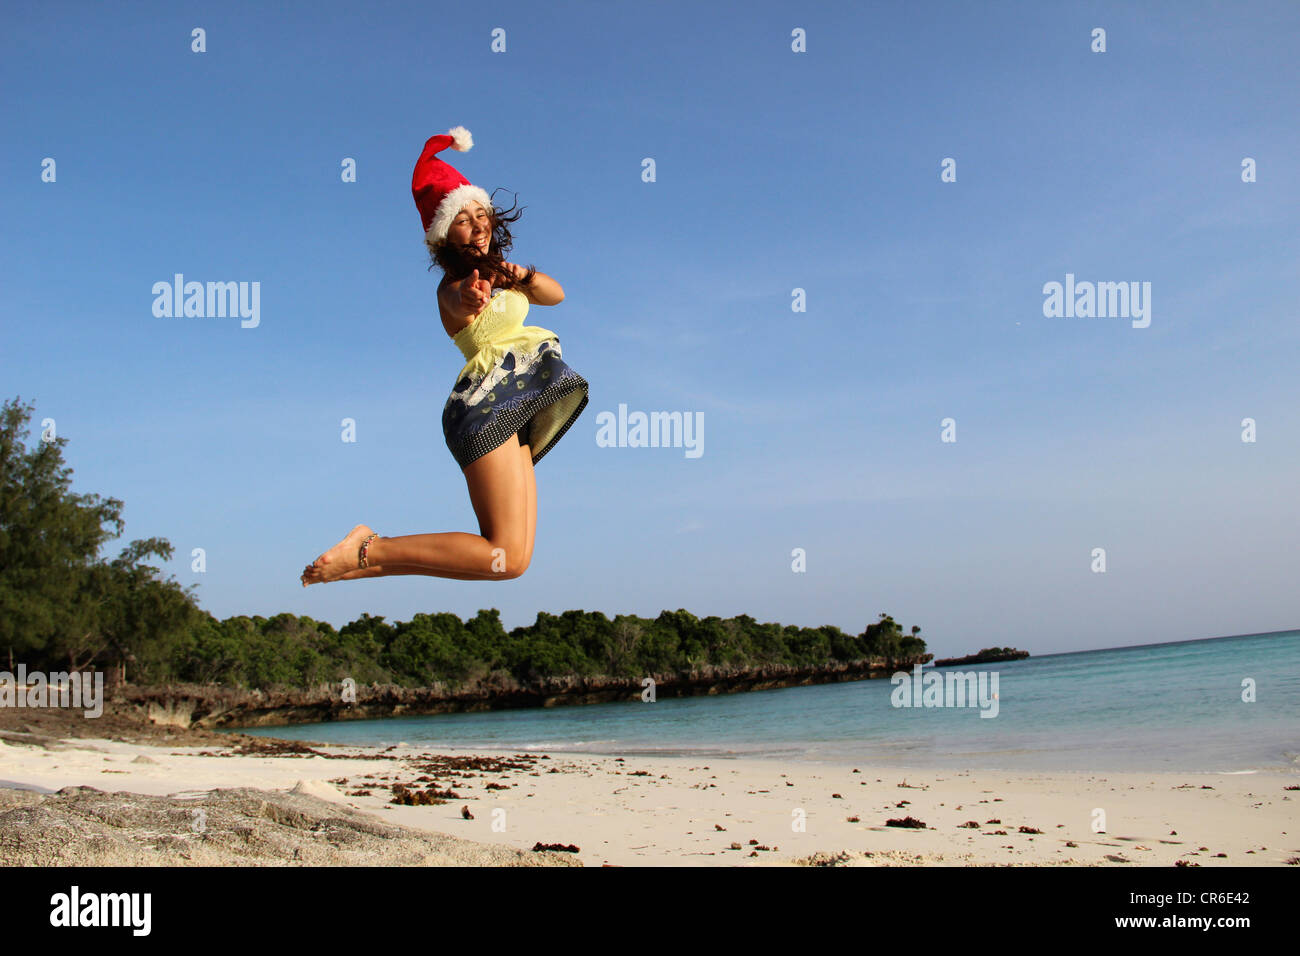 Africa, Tanzania, Teenage girl jumping at beach - Stock Image